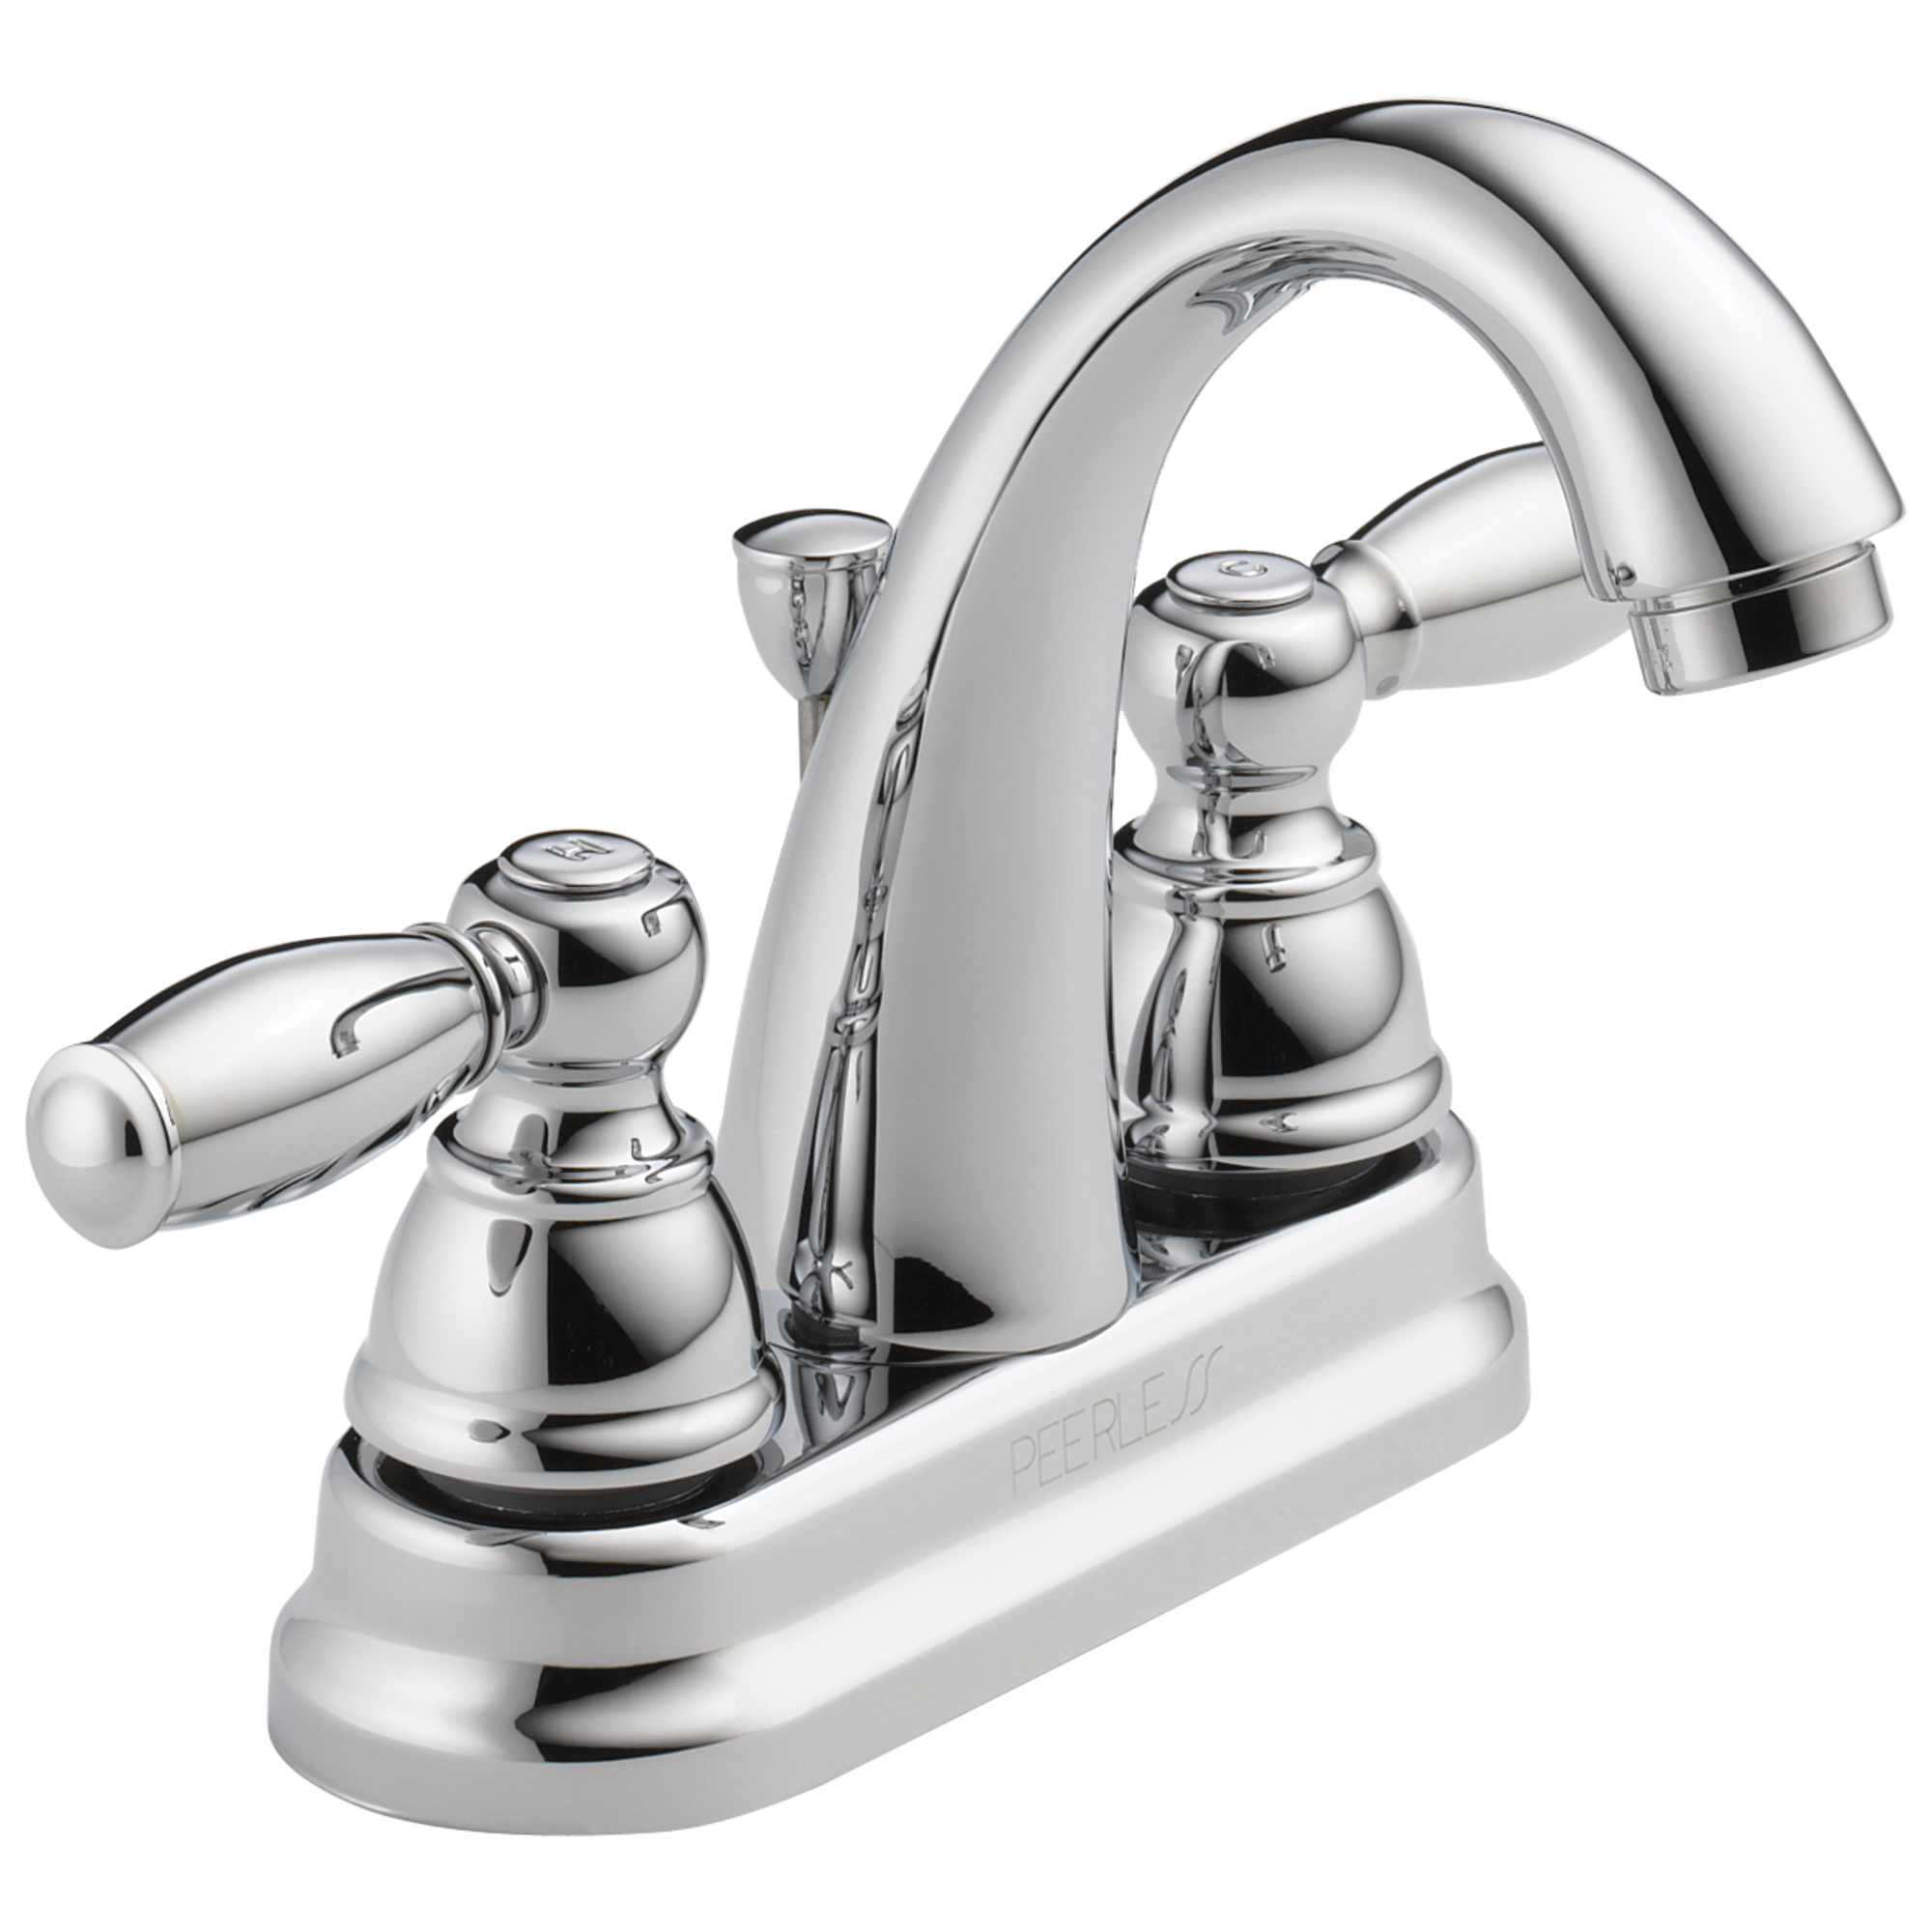 Peerless® P299696LF Centerset Lavatory Faucet, Chrome Plated, 2 Handles, Pop-Up Drain, 1.2 gpm